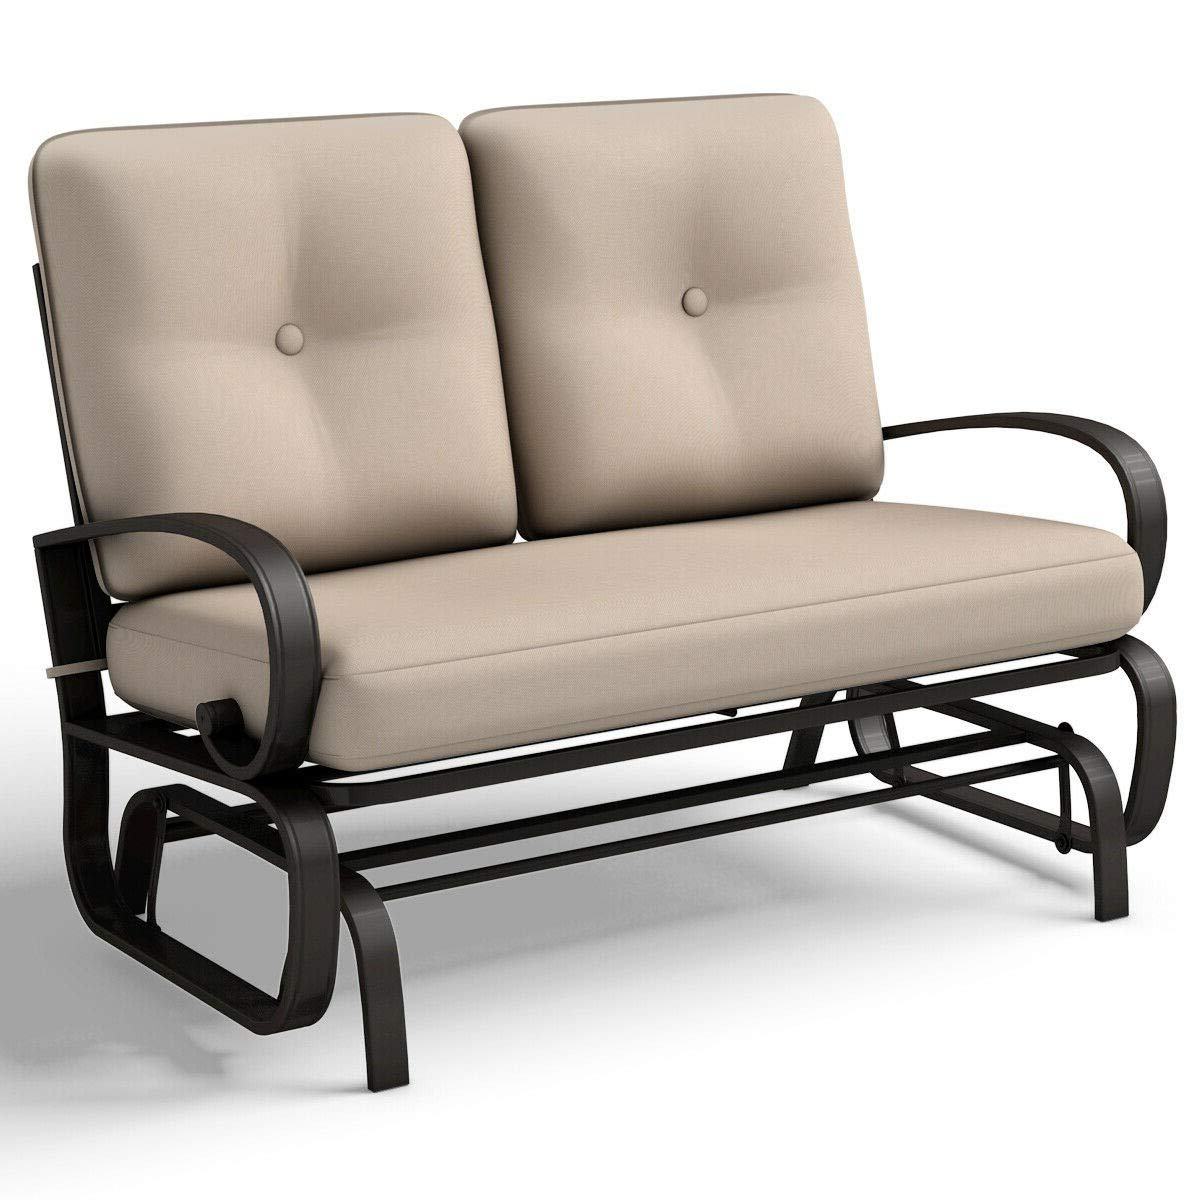 Glider Benches With Cushions Throughout Widely Used Amazon: Porch Glider Backyard Garden Patio Swing Chairs (View 15 of 30)